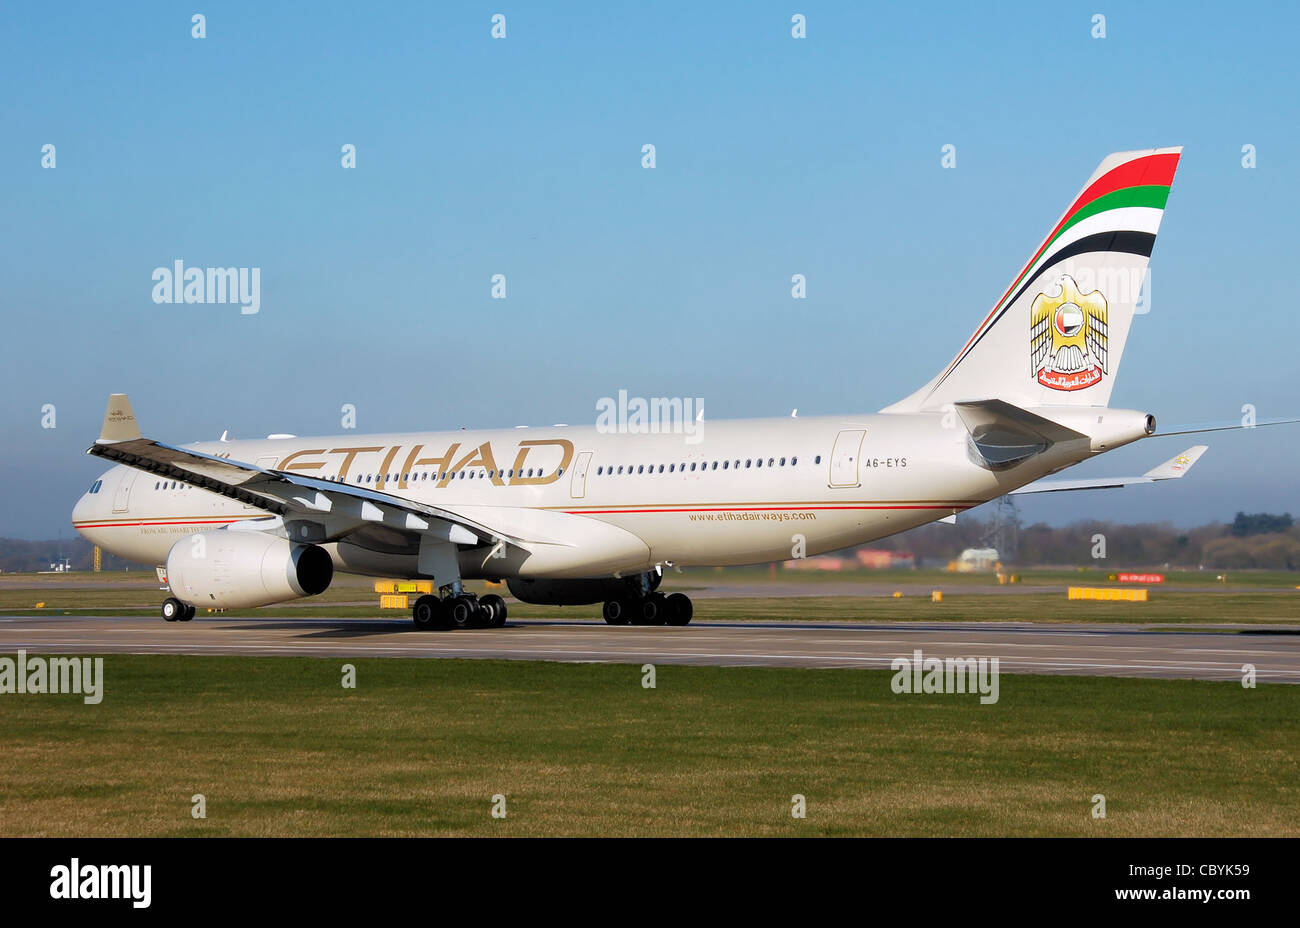 Etihad Airways Airbus A330-200 (A6-EYS) taxis for takeoff at Manchester Airport, England. - Stock Image